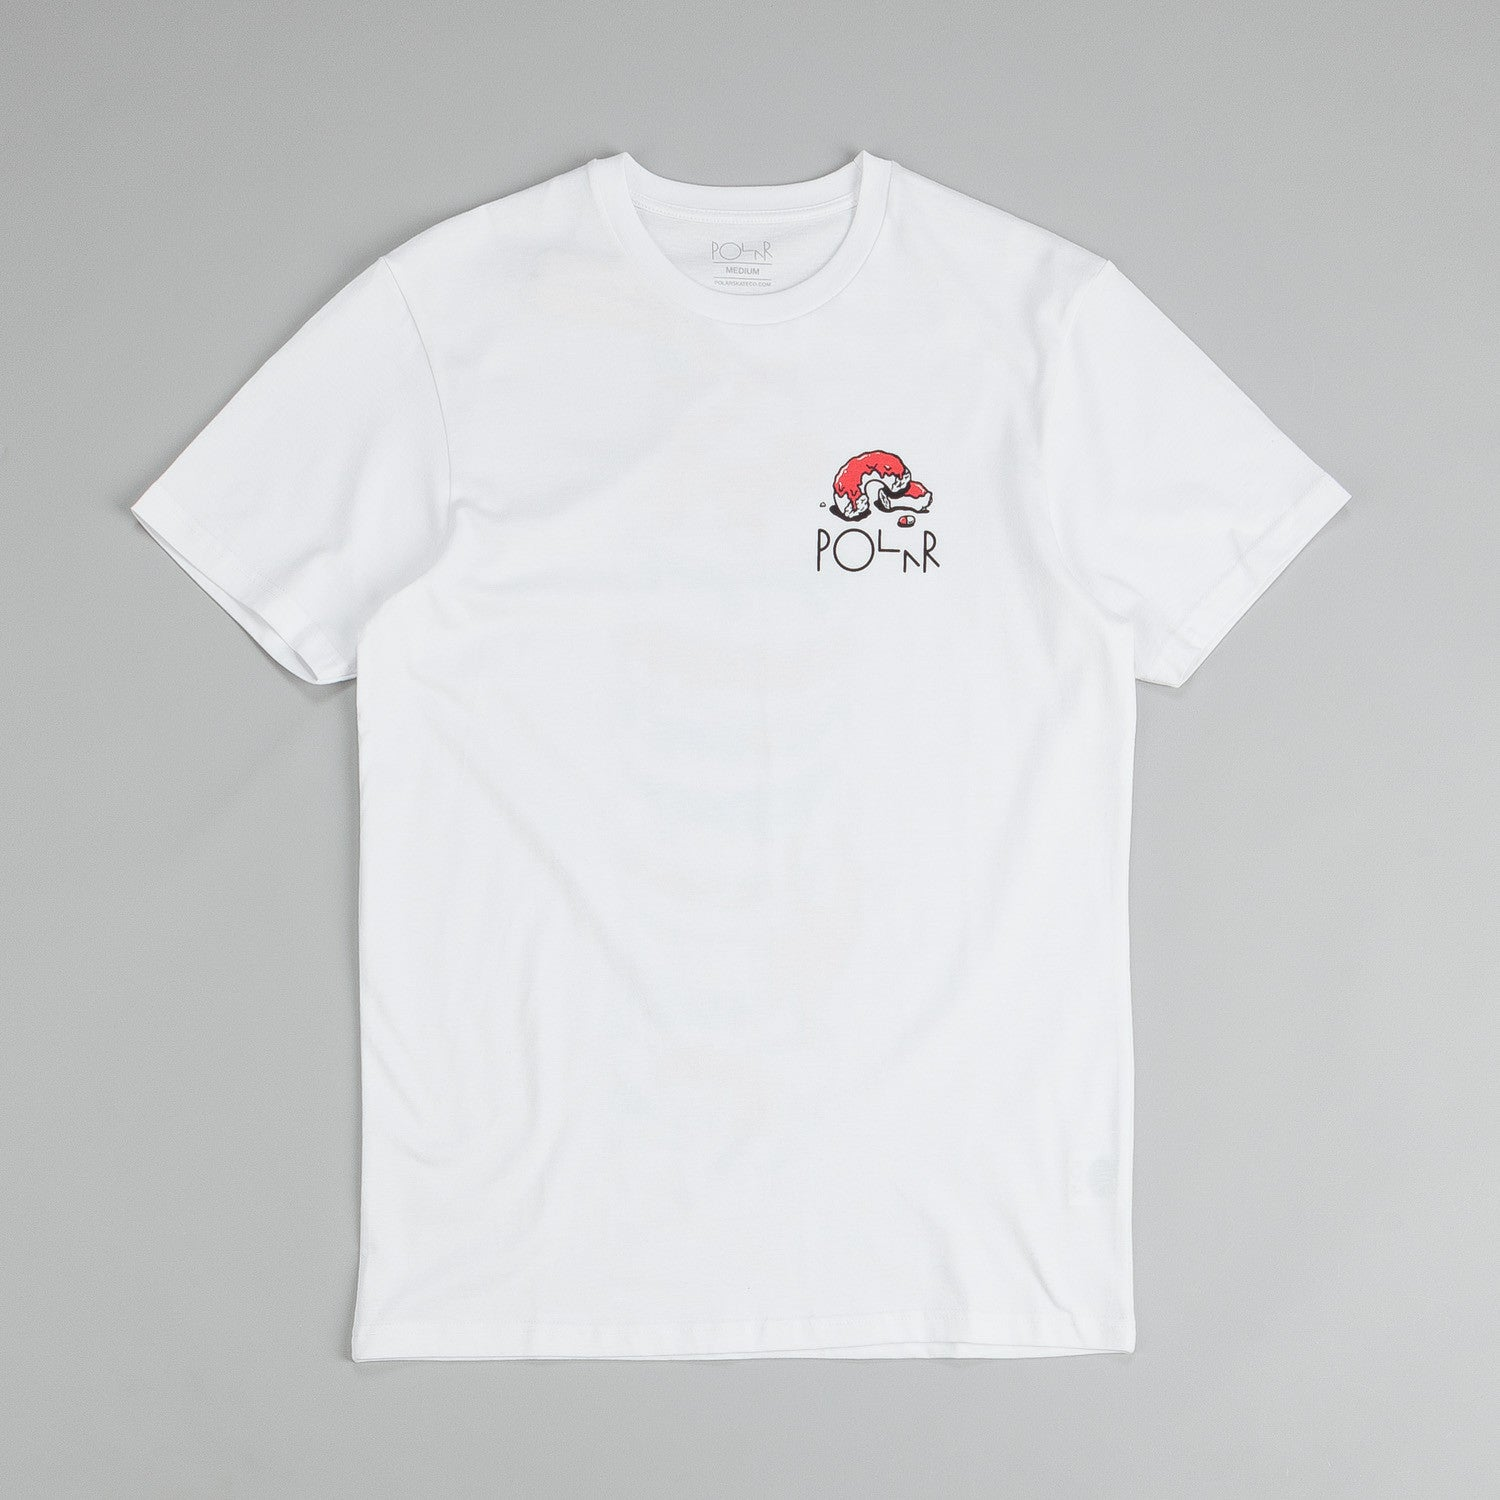 Polar Donut Kingdom T Shirt White / Red - Blue - Black